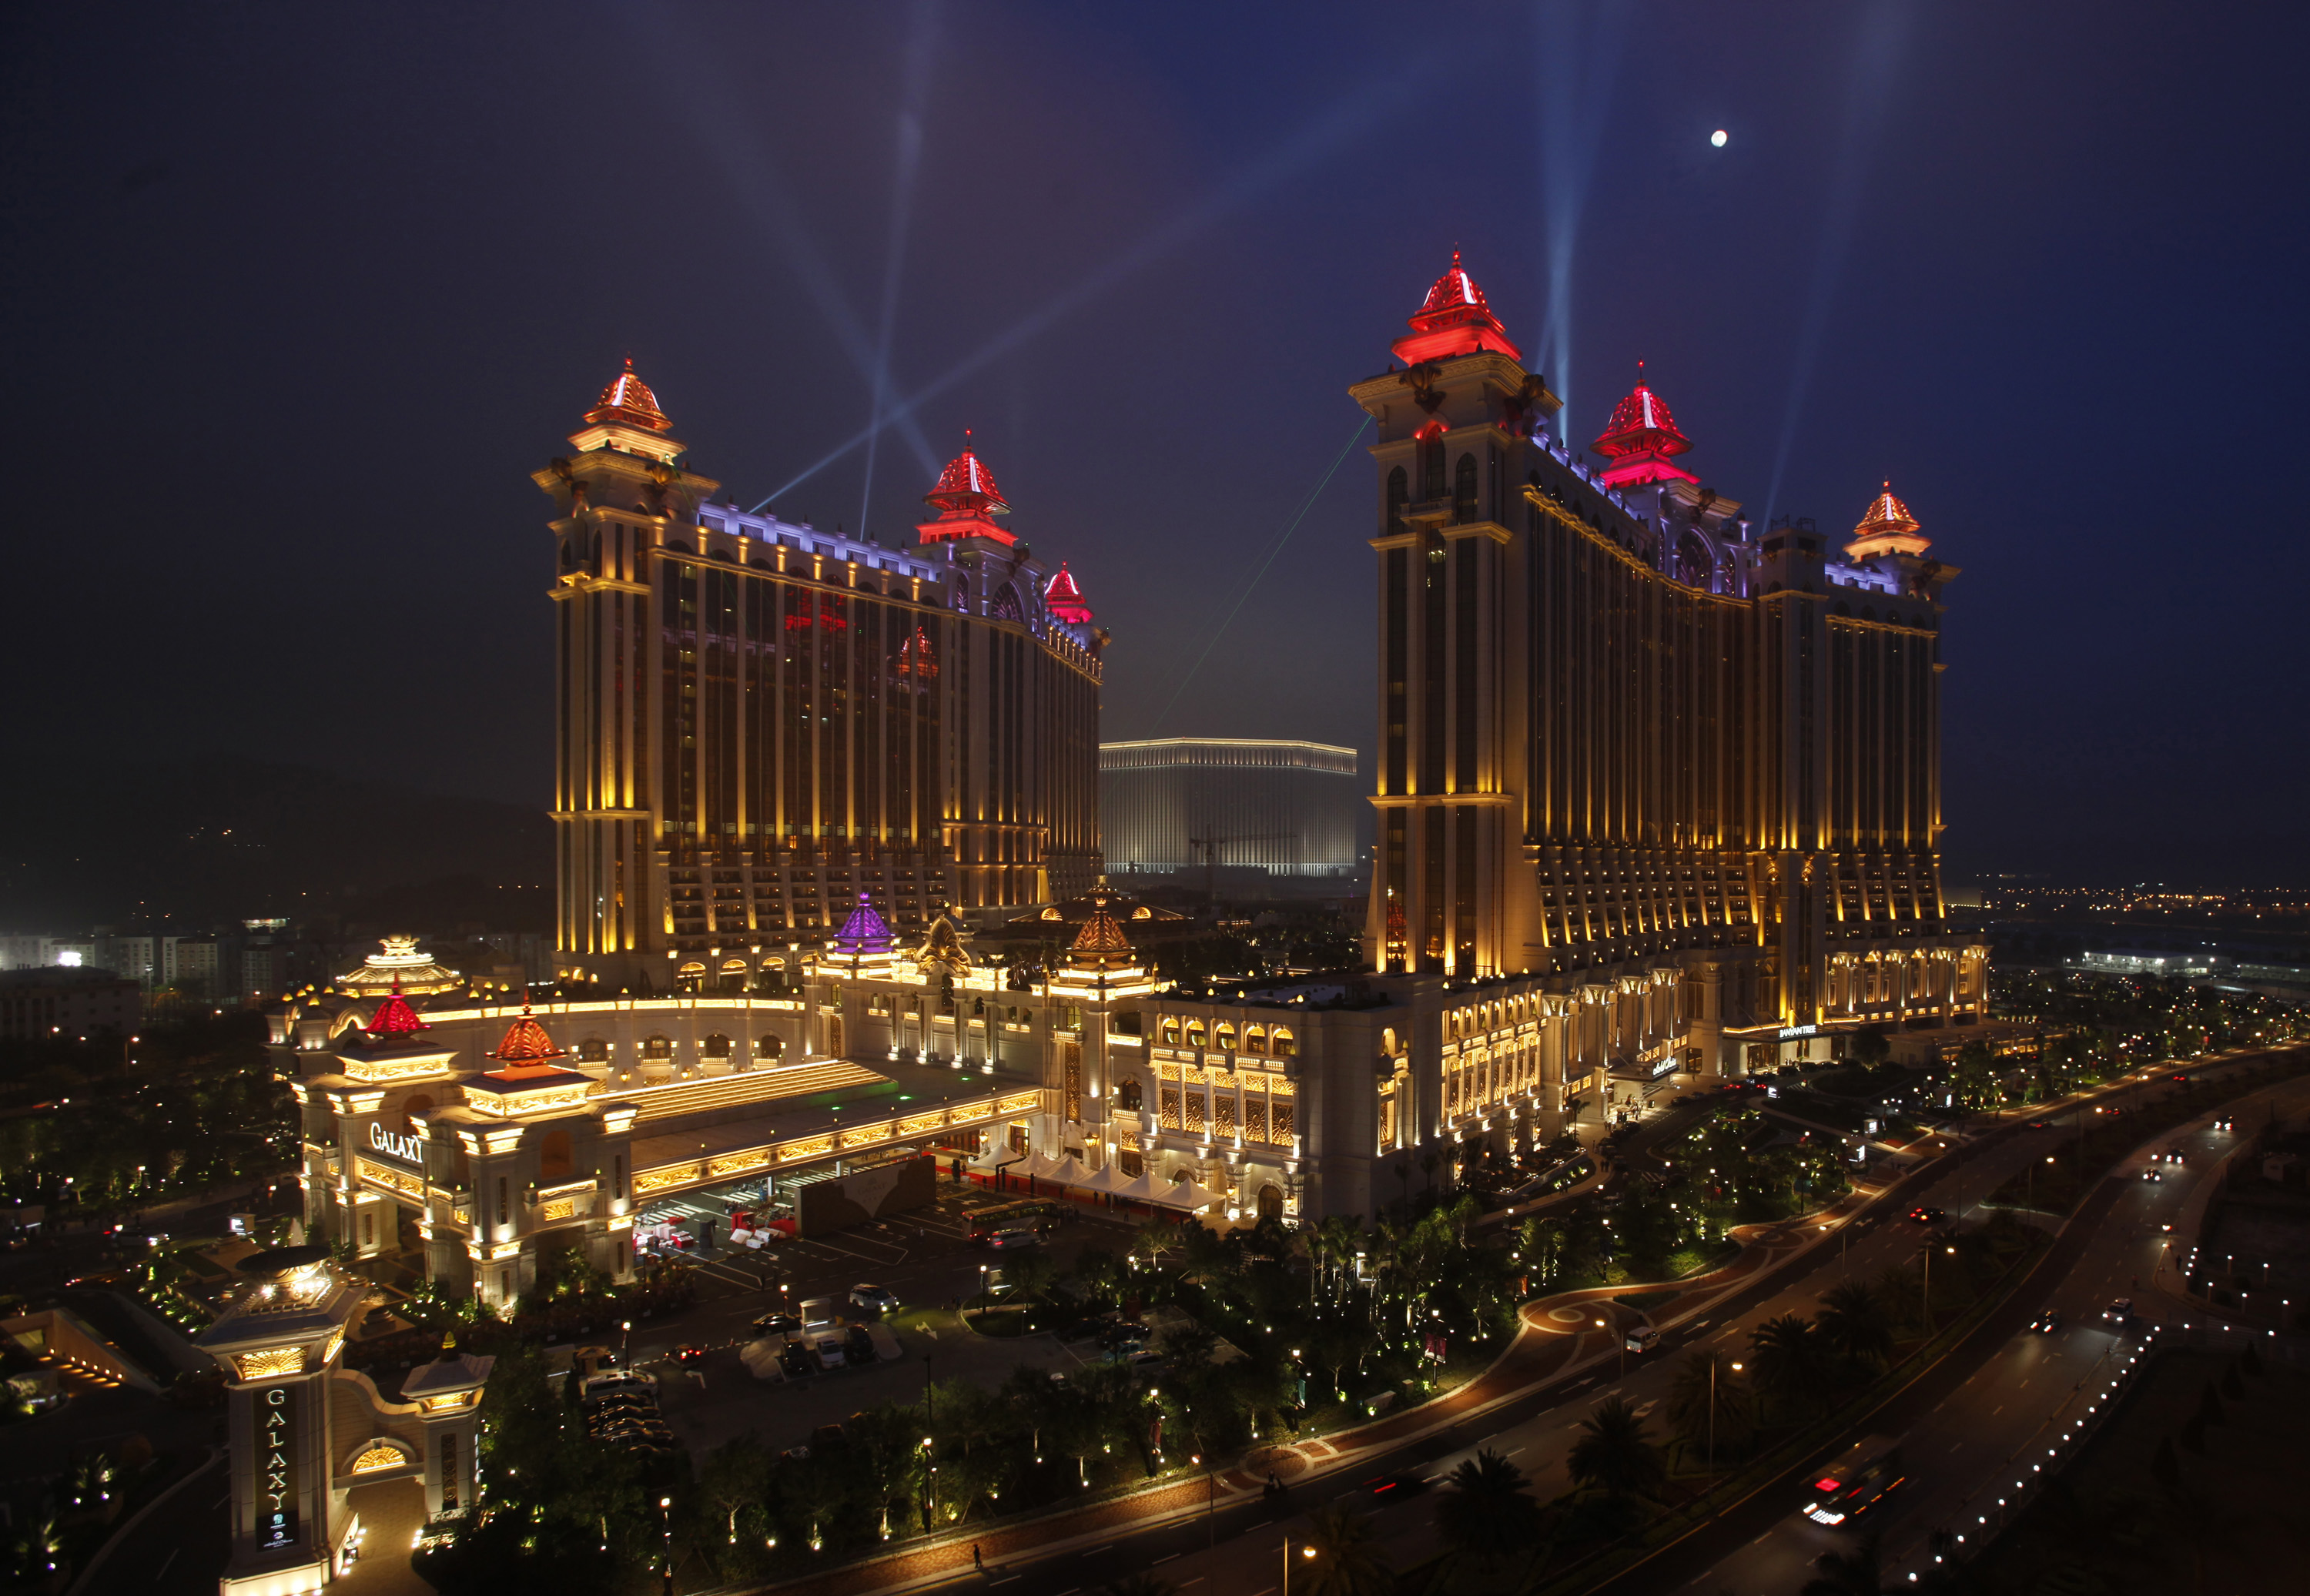 View of Macau casinos